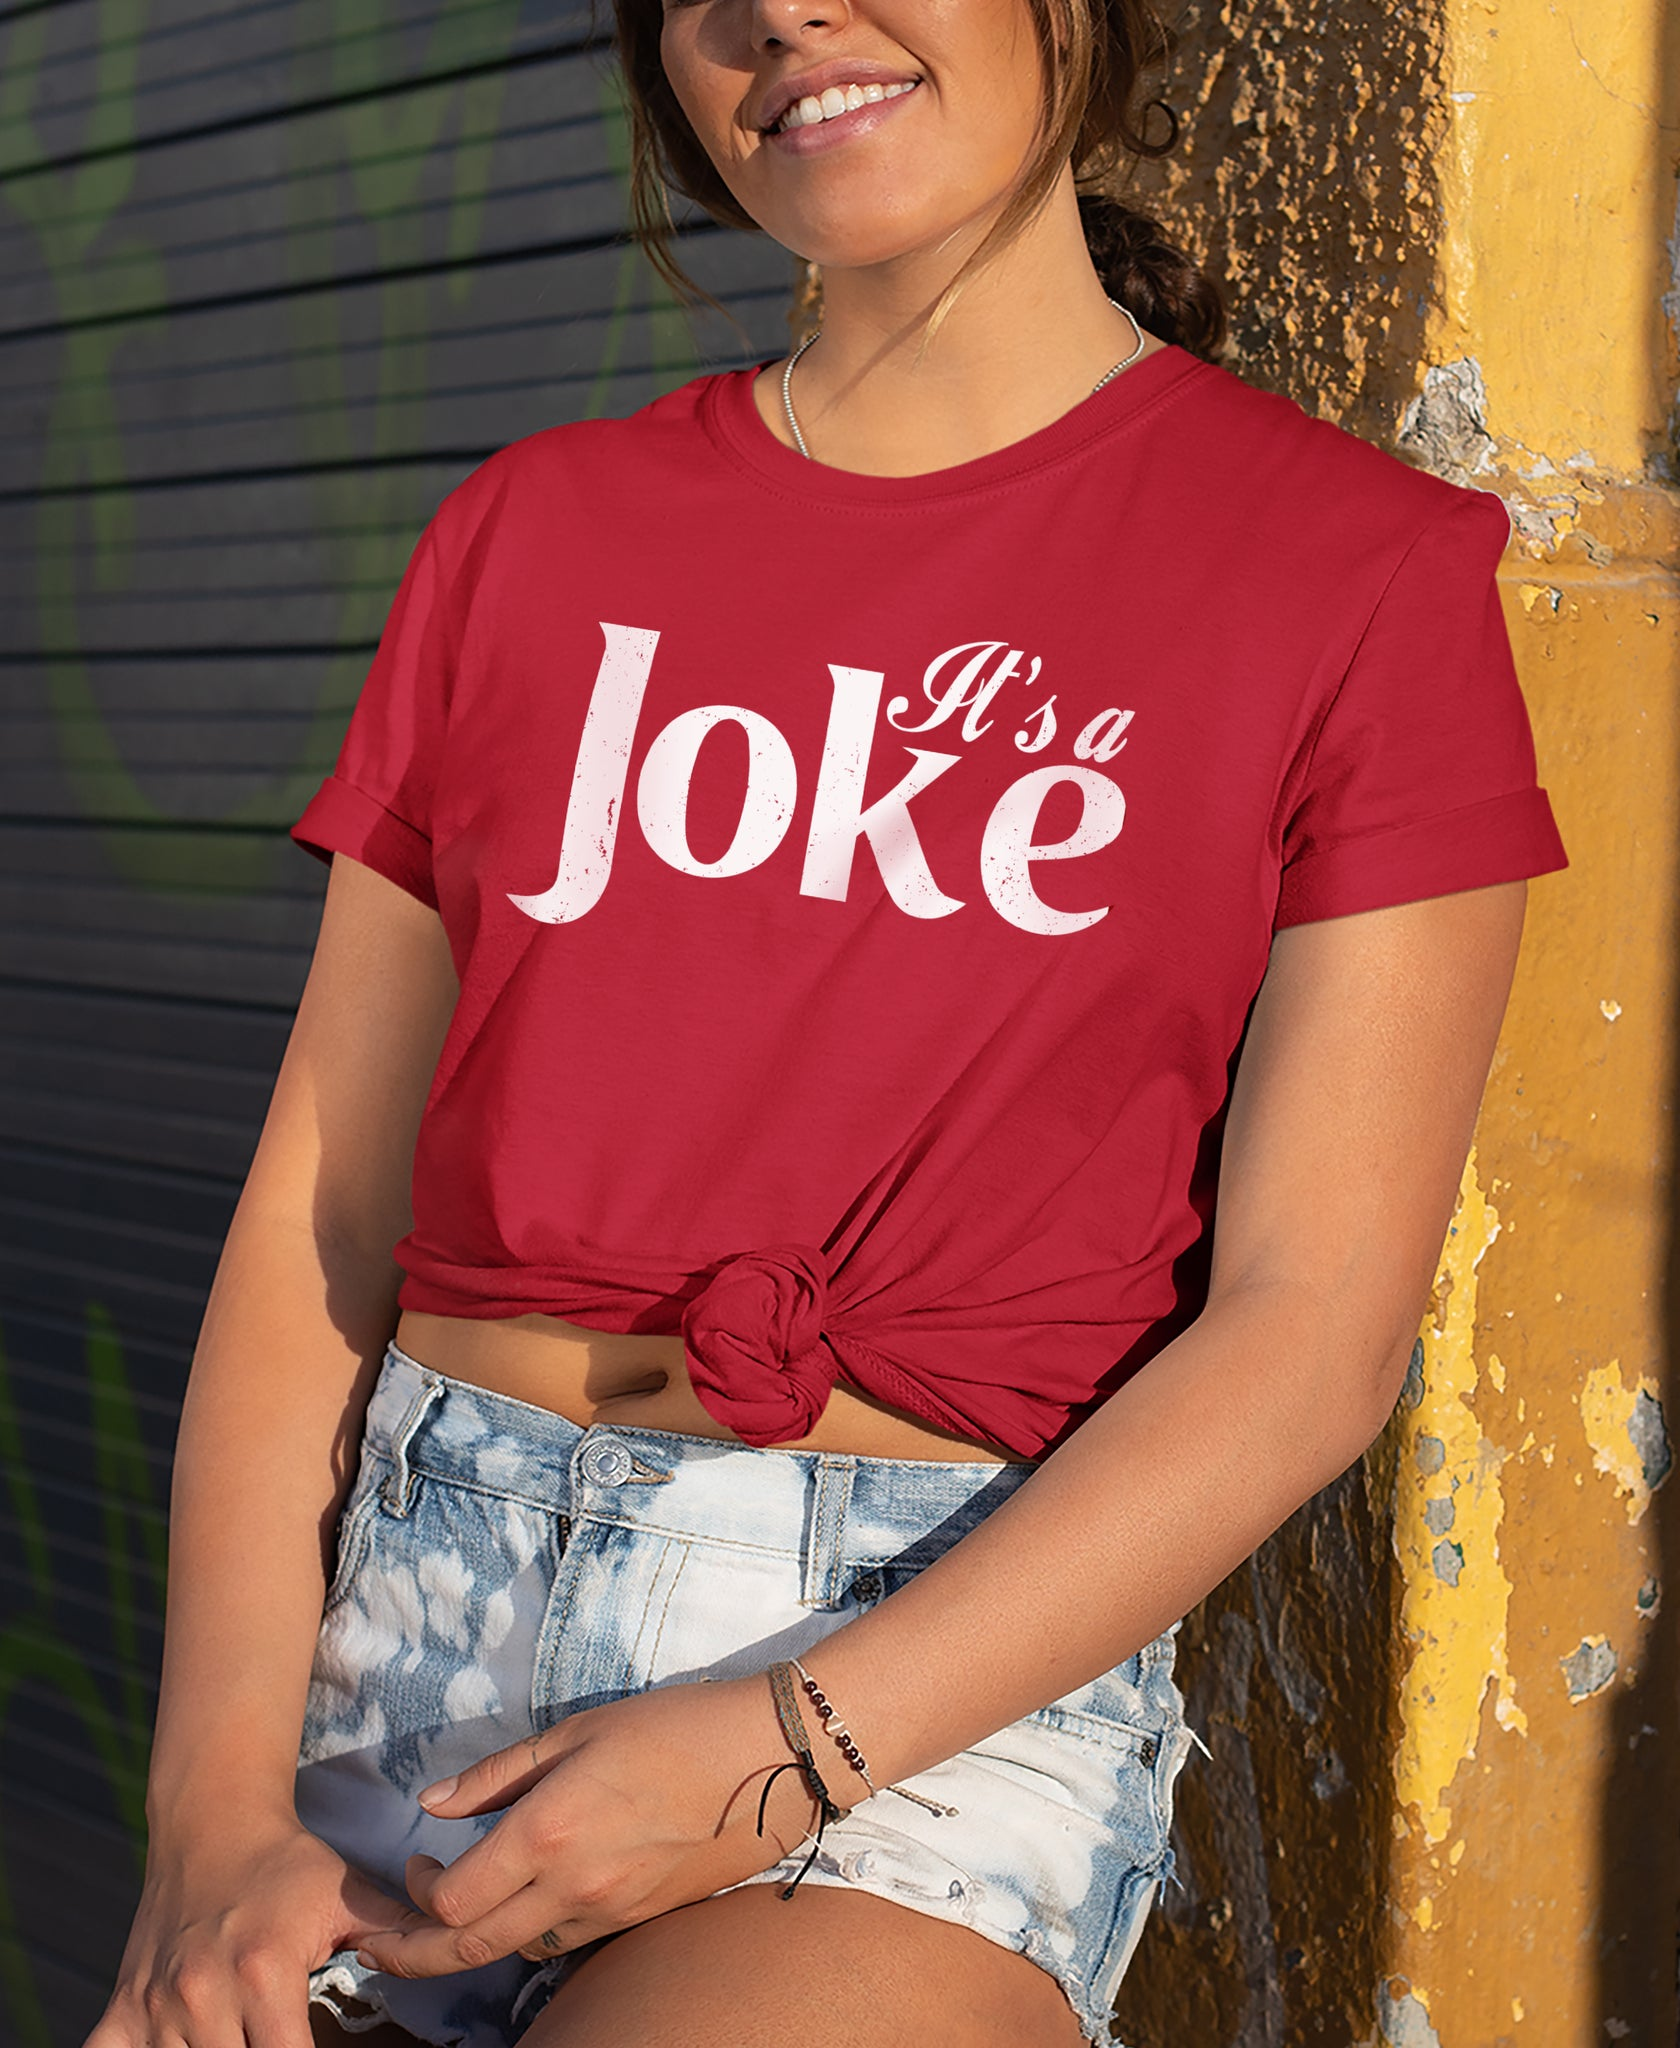 It's A Joke Shirt